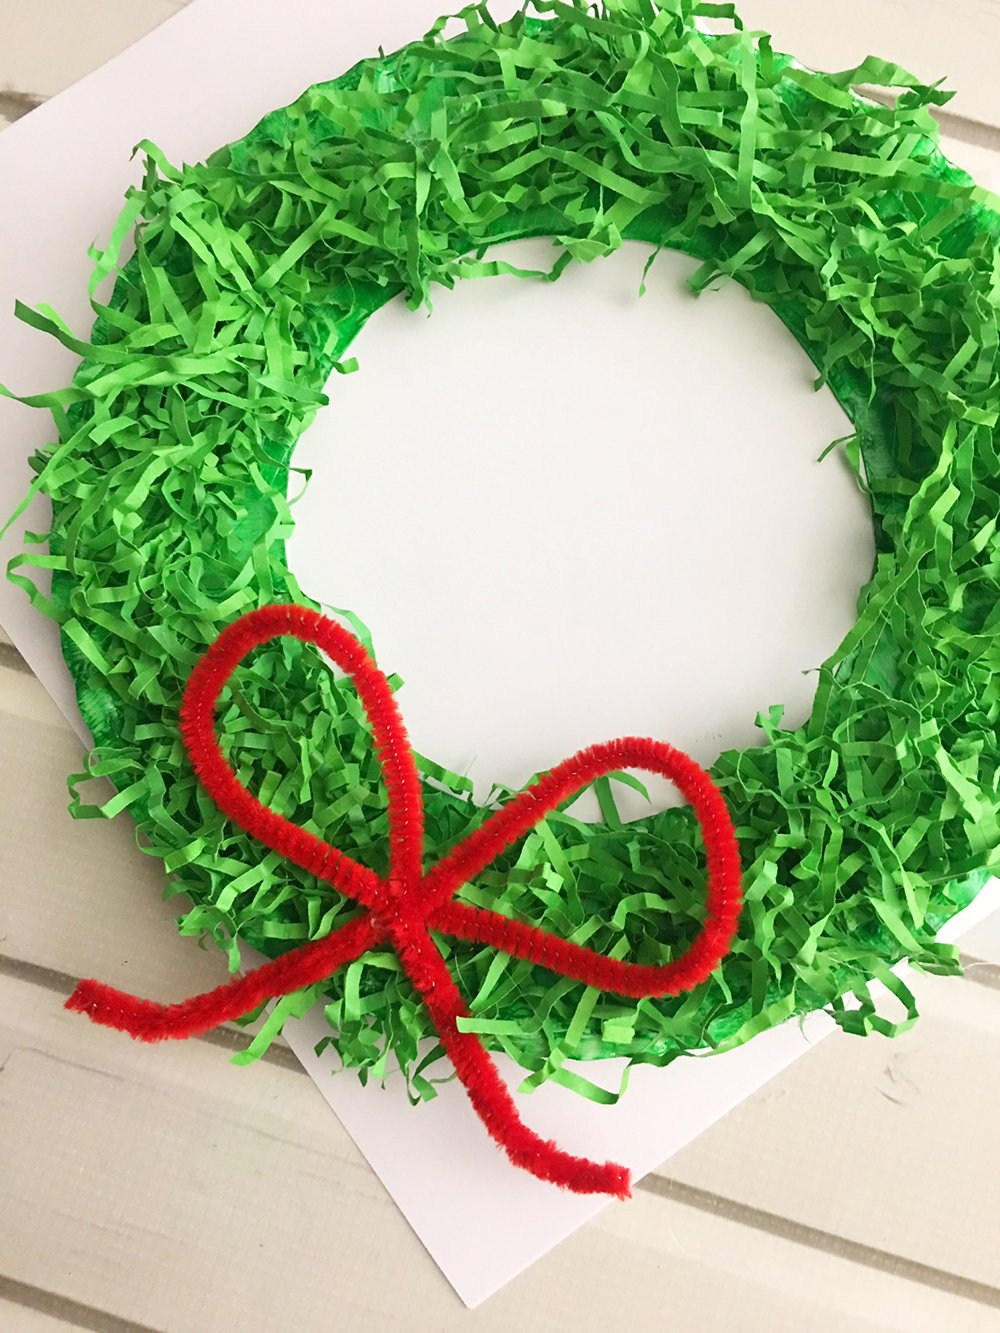 Paper Christmas Wreath Designs.Diy Paper Christmas Wreath Onion Rings Things